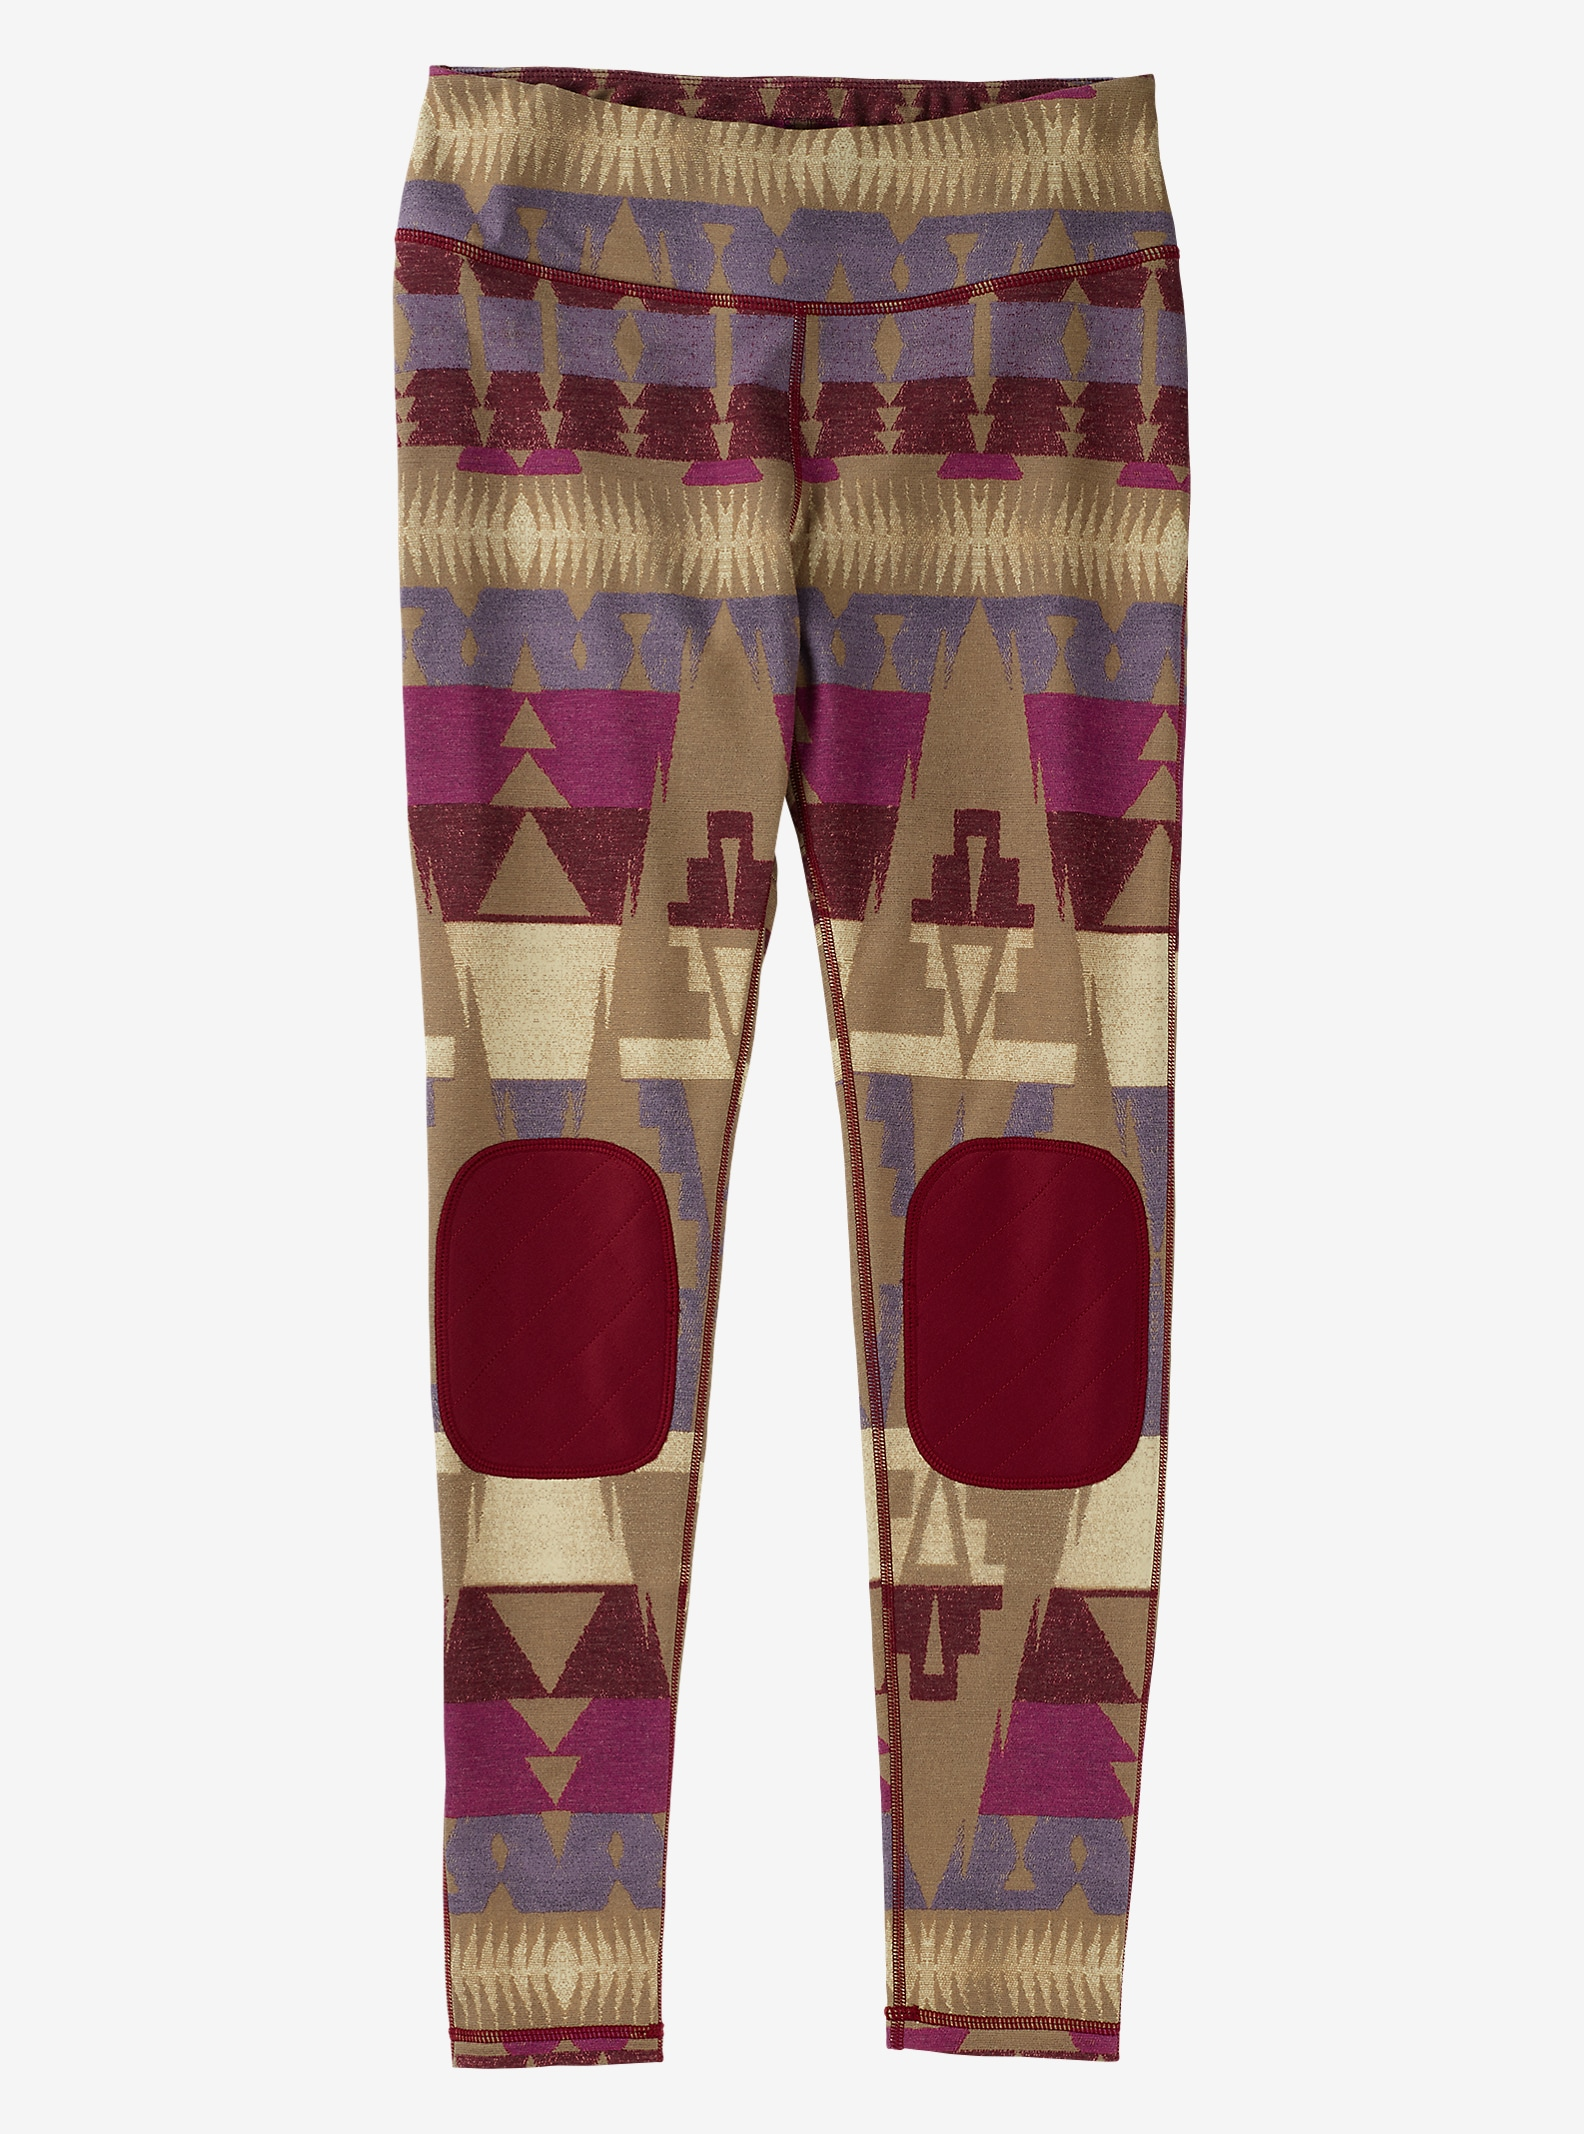 Burton Women's Expedition Base Layer Wool Pant shown in Vision Quest